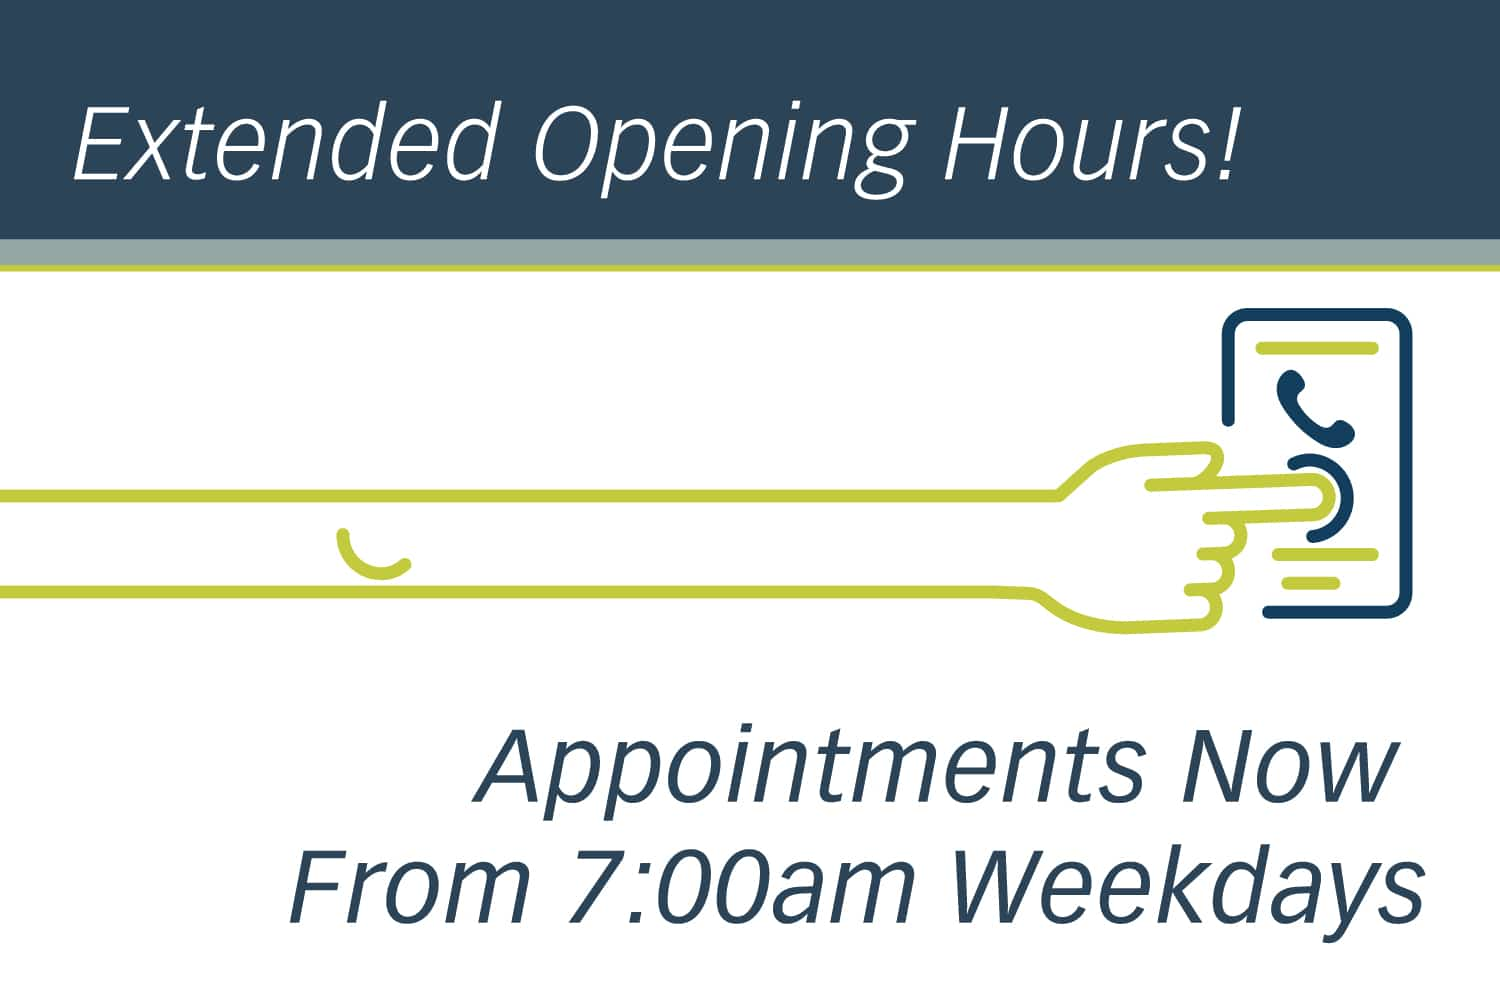 gp tuggeranong - greenway medical centre - doctors servicing kambah, wanniassa, isabella plains, gordon, conder - extended opening hours